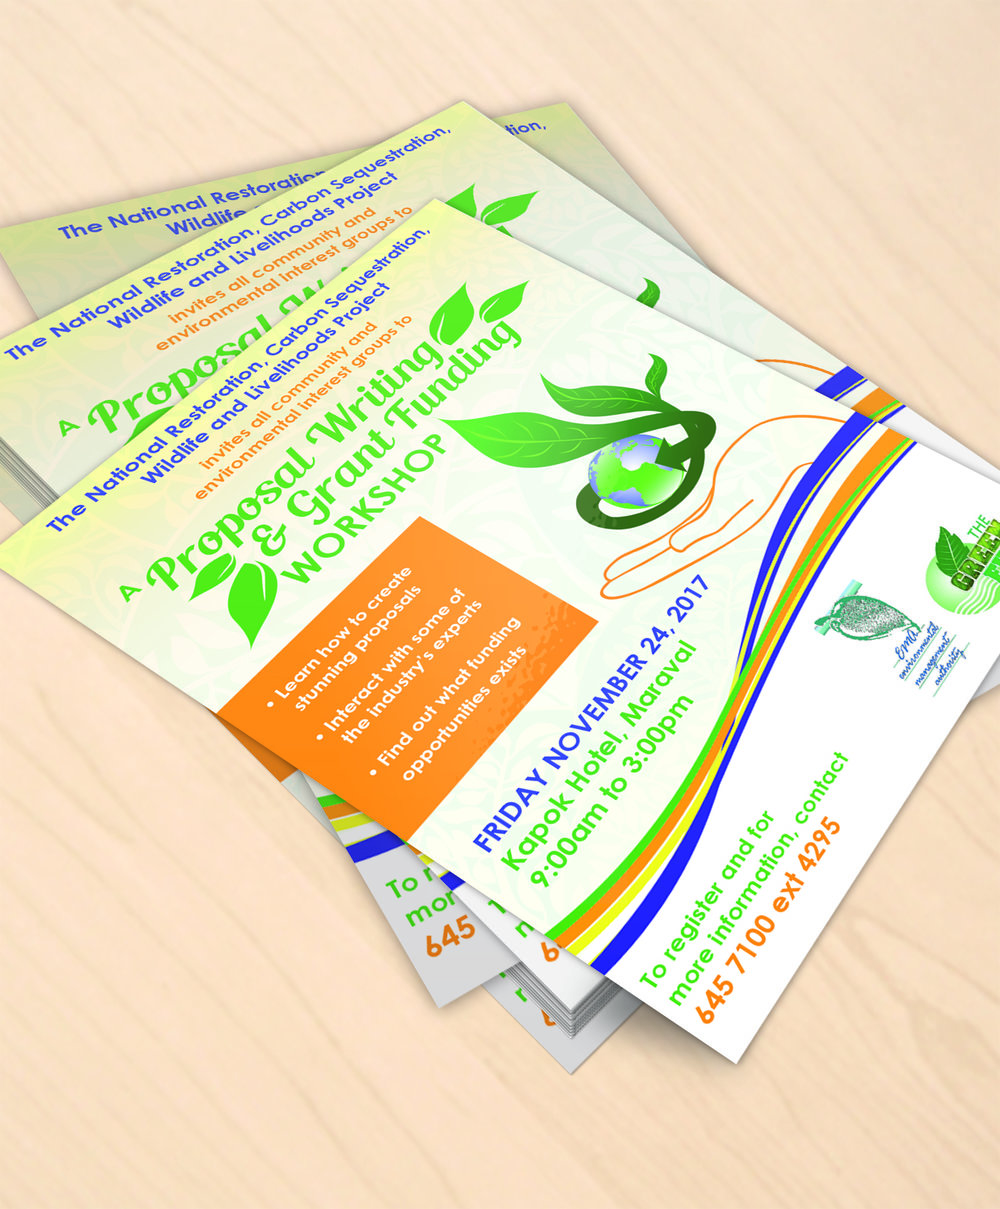 Proposal Writing & Grant Funding Workshop Flyer - Client: The Environmental Management AuthorityDescription: Design flyer for a workshop hosted by the EMA aimed at educating and encouraging members of the public and organizations to apply for funding for environmental projects. The client requested the colour scheme greens, blues and oranges.Year: 2017